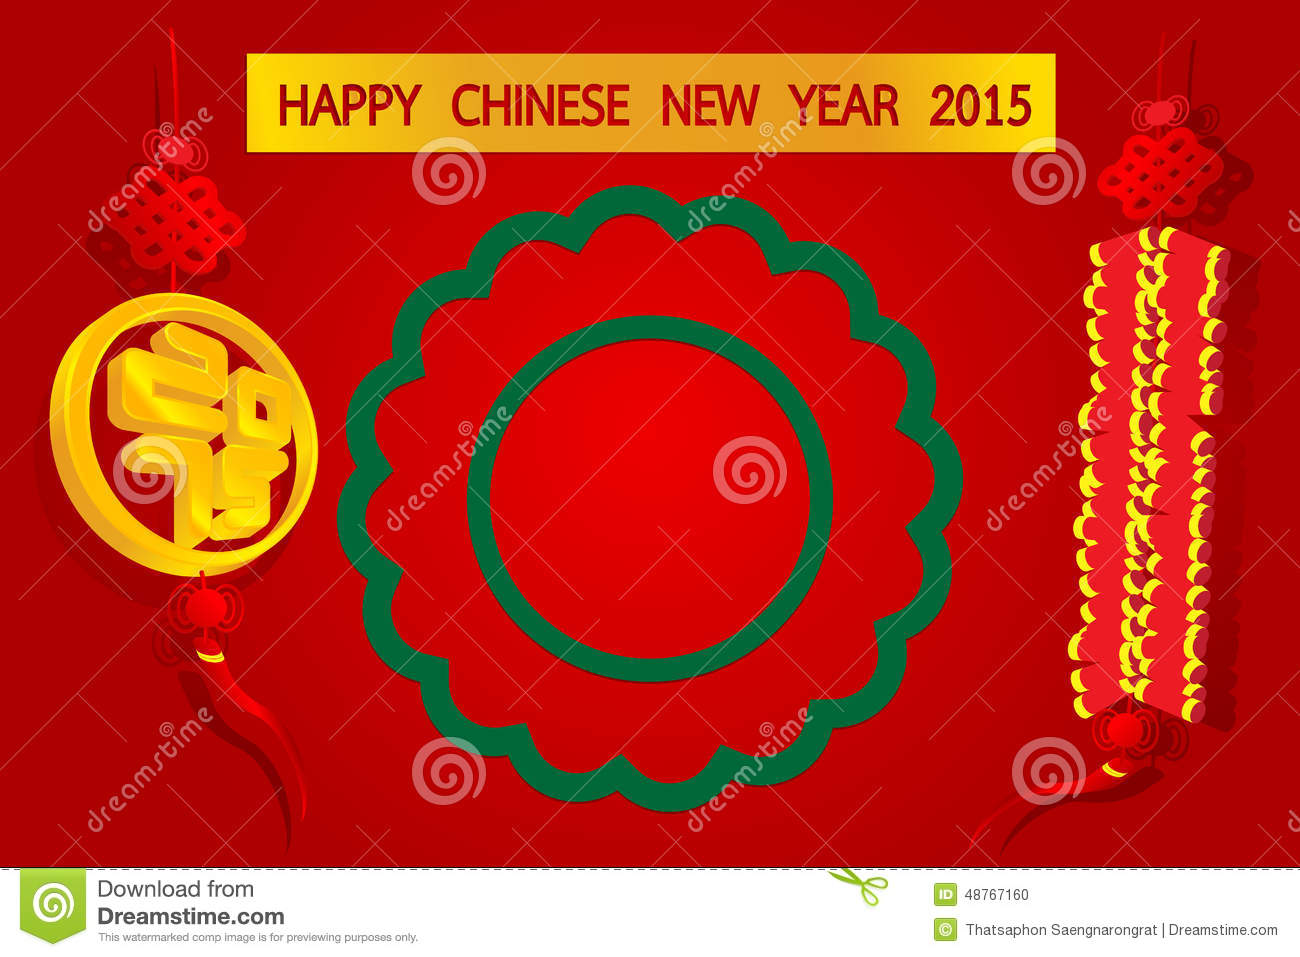 Illustration Of Happy Chinese New Year 2015 With Gold Amulet On Red Background